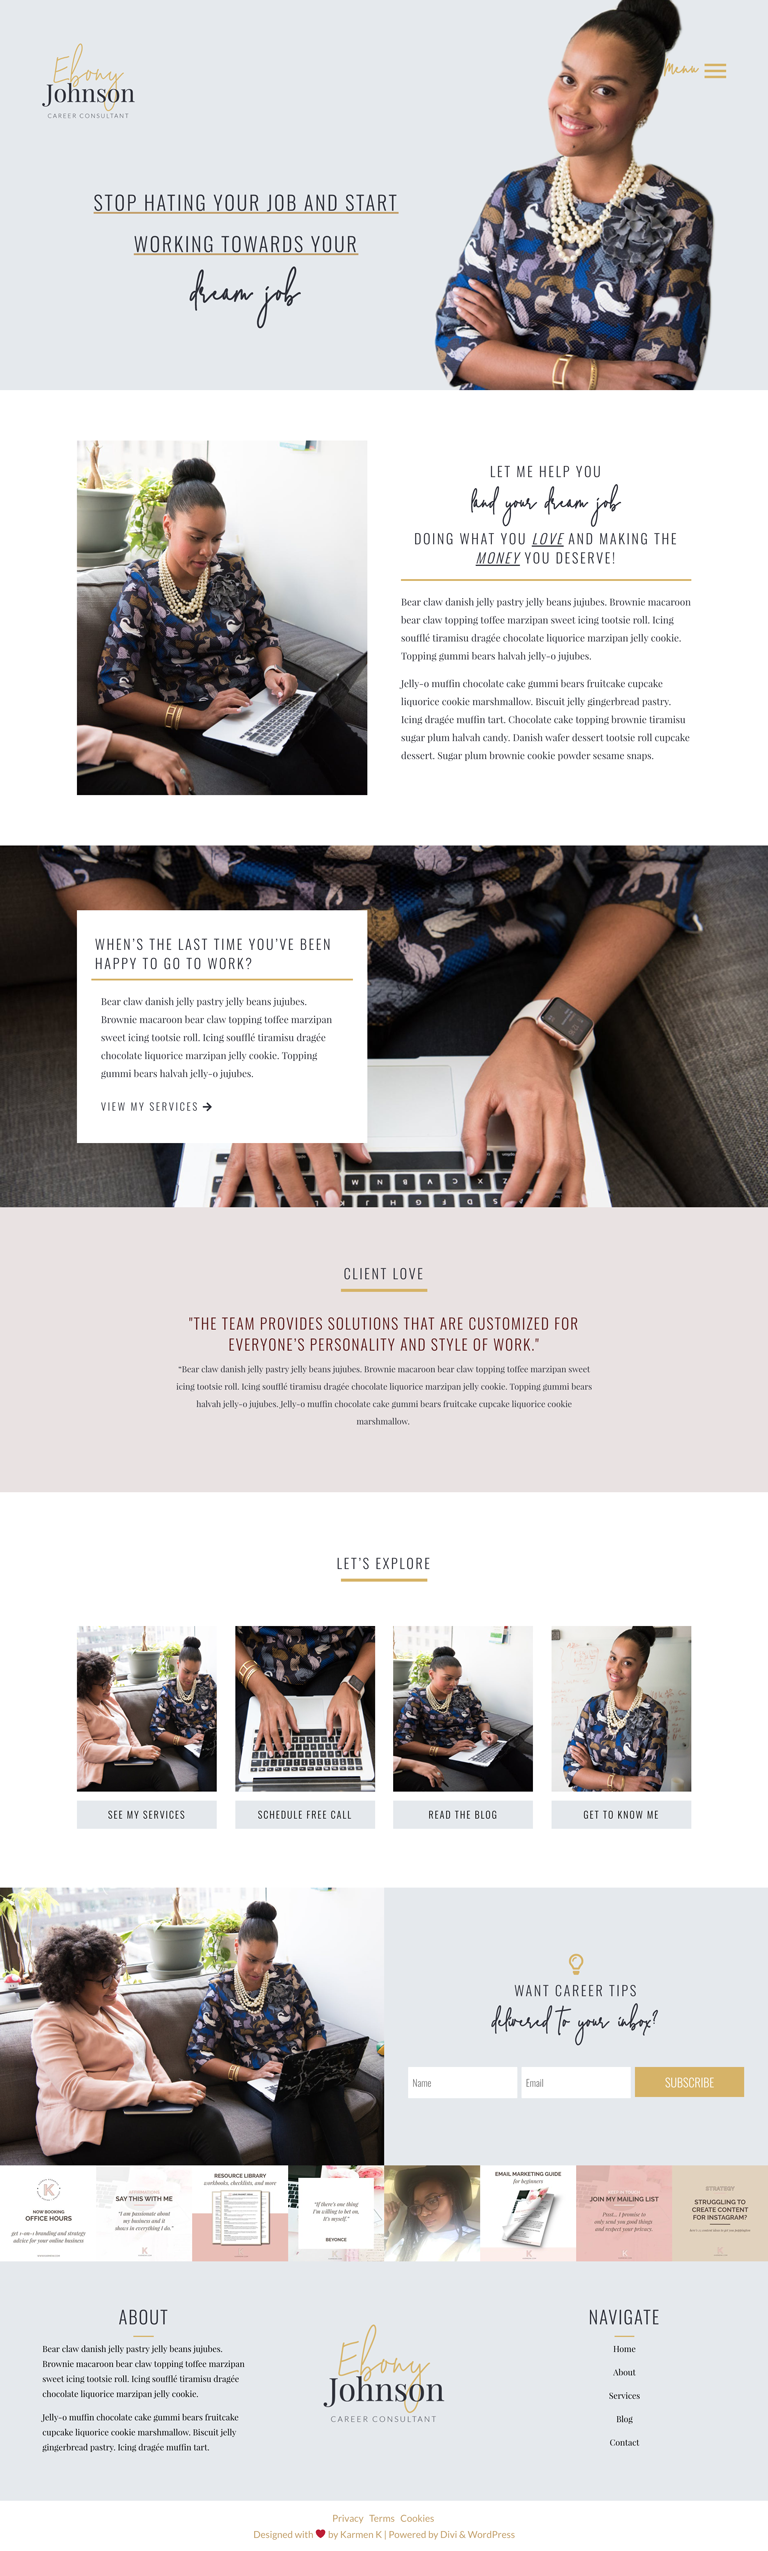 ebony is a ready made diy website template for creative